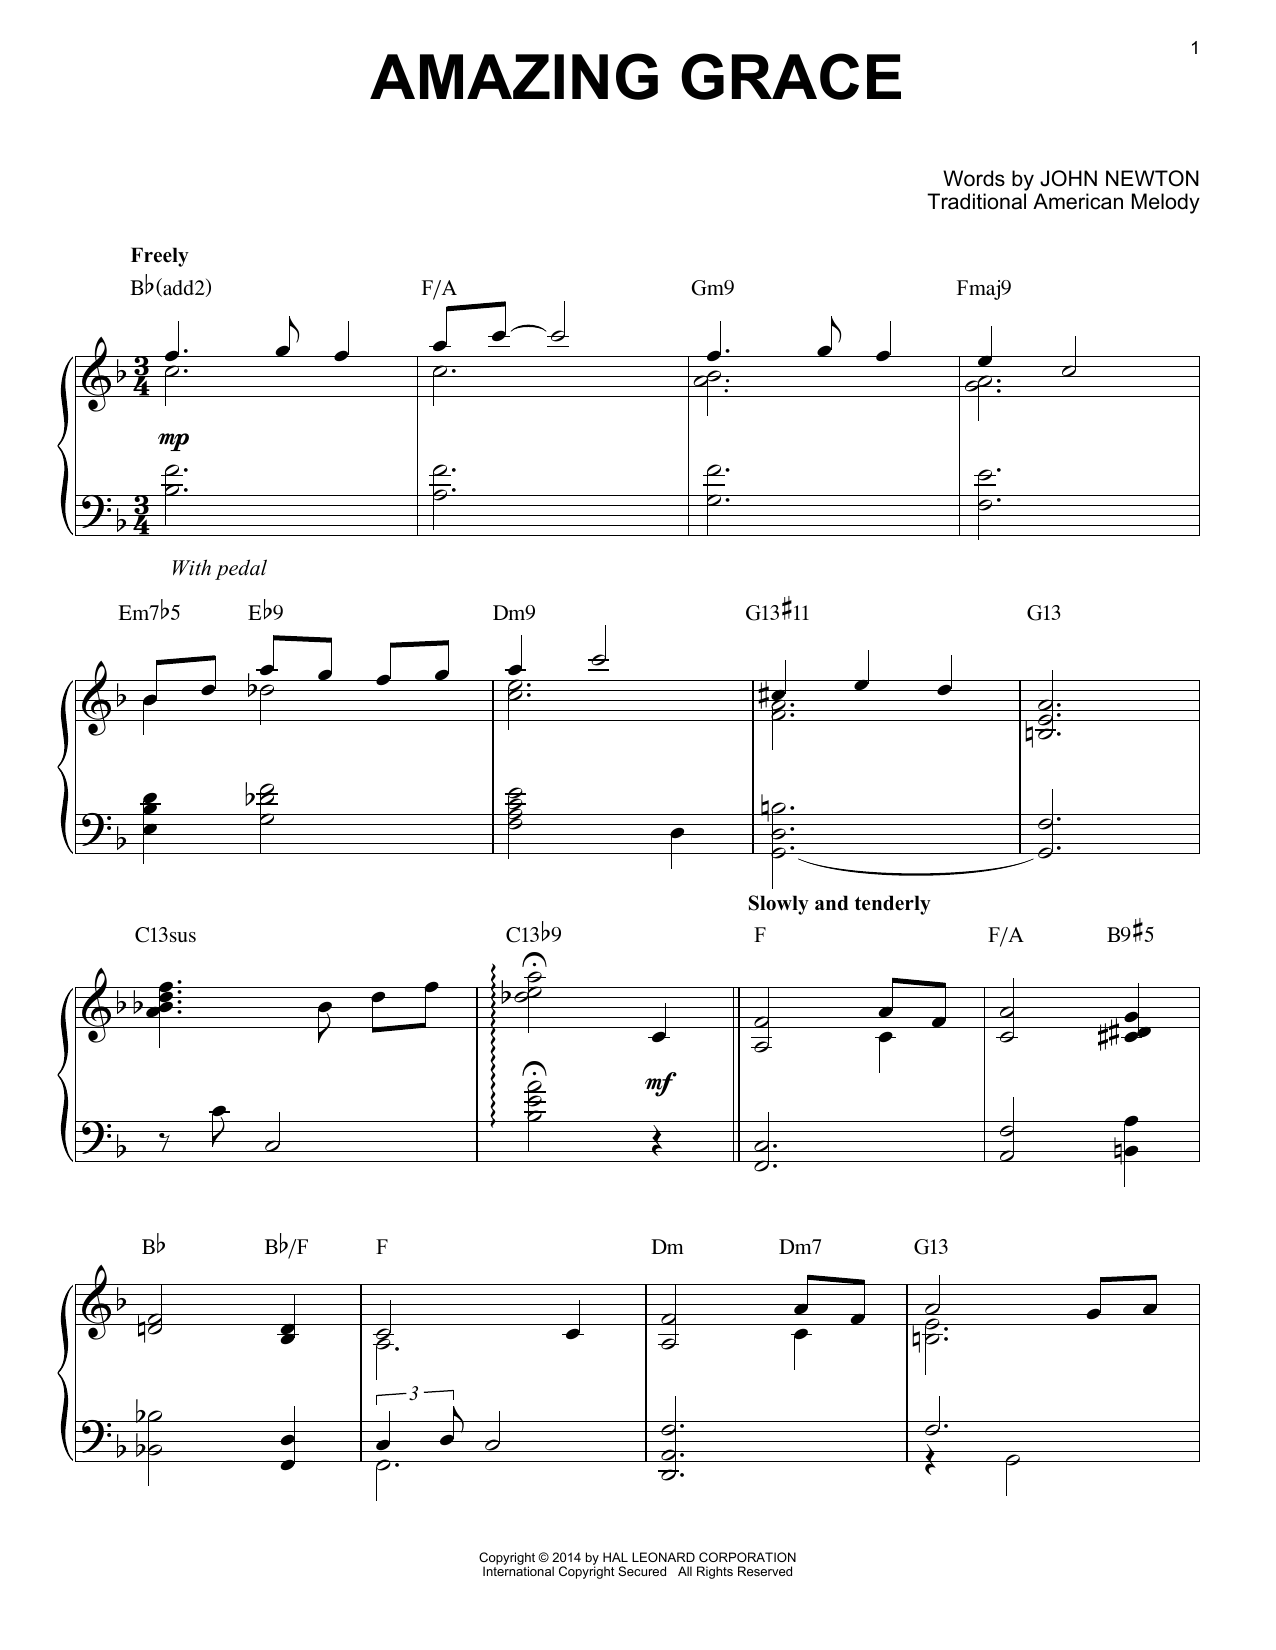 Traditional American Melody Amazing Grace sheet music notes and chords. Download Printable PDF.